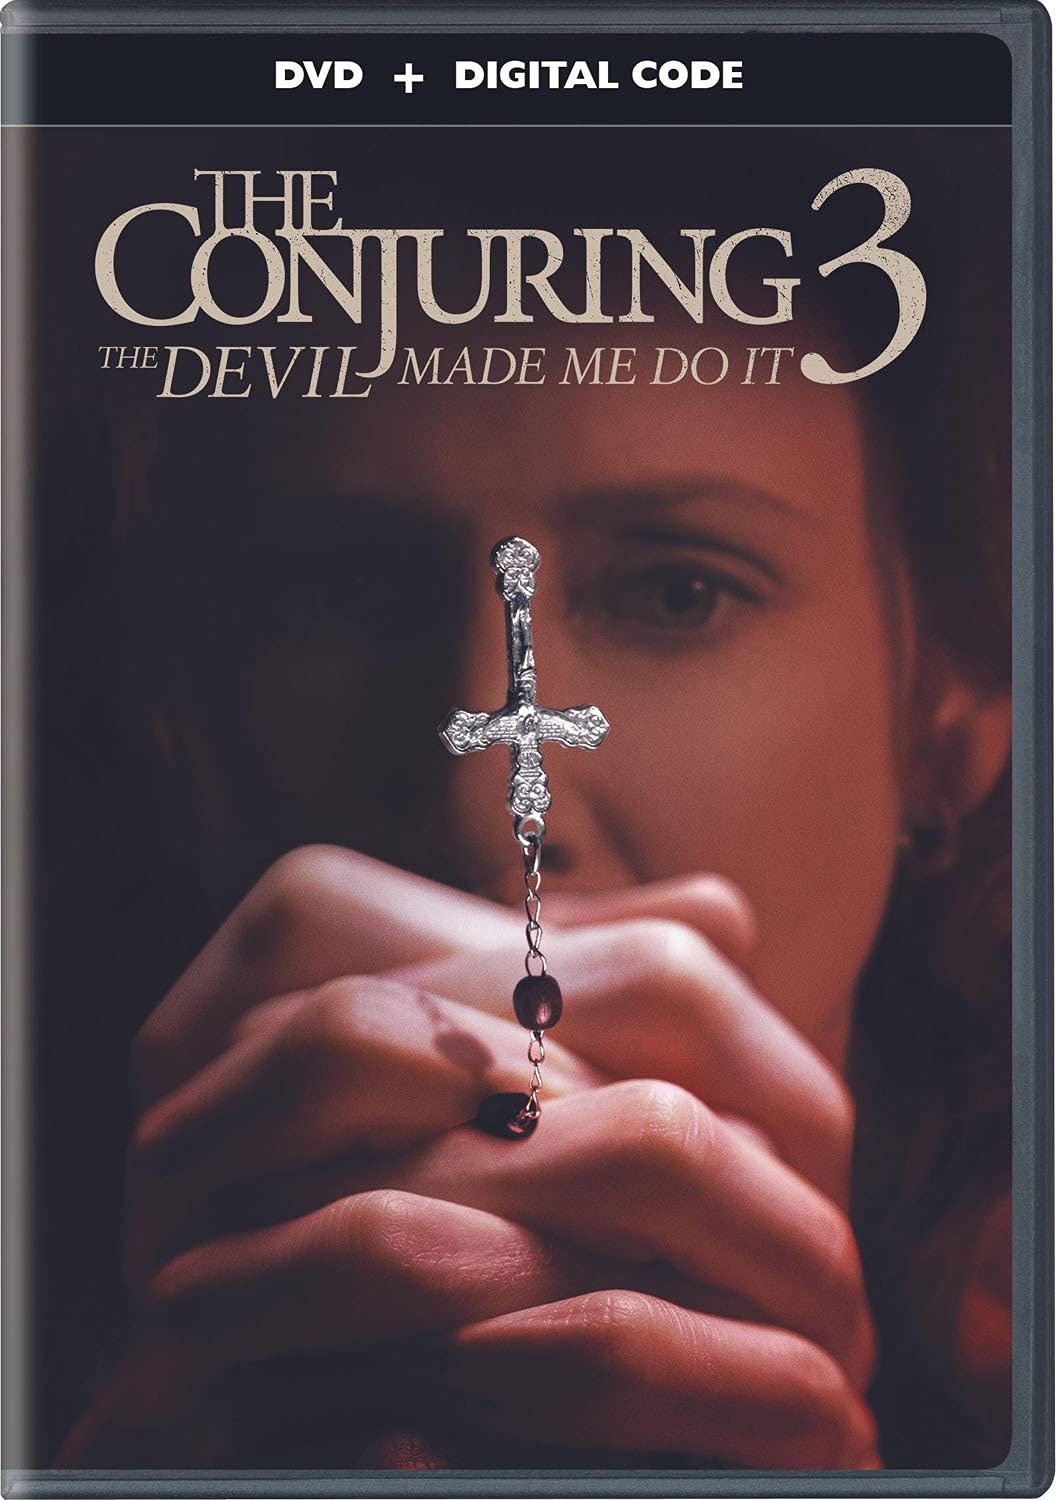 The-Conjuring-3:-The-Devil-Made-Me-Do-It-(DVD)